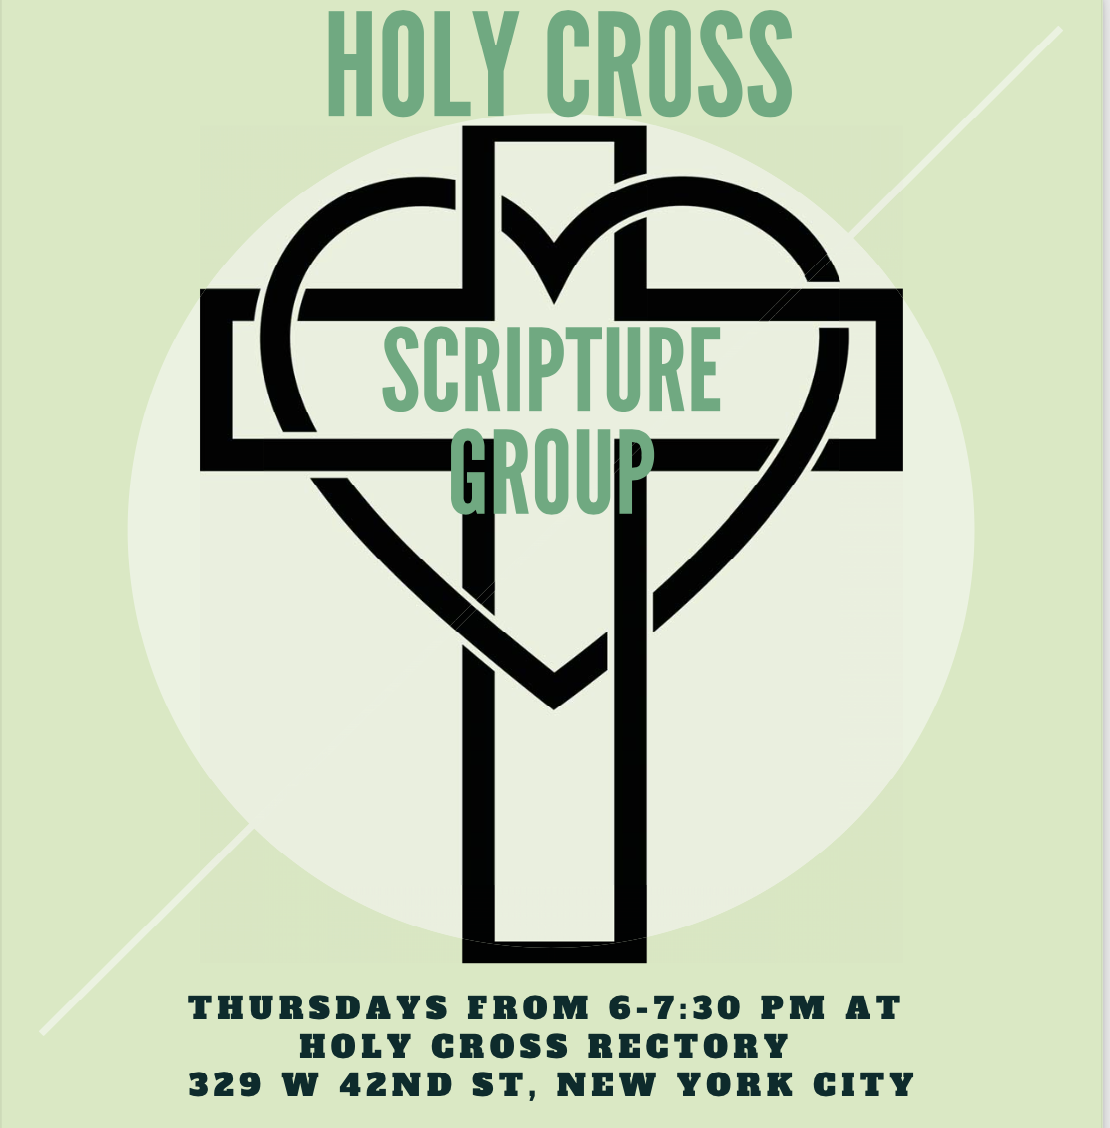 The Holy Cross Scripture Group meets every Thursday from 6:00 – 7:30pm in the Rectory, and features inspiring videos, discussion of scripture, encouraging fellowship and prayer. Each week we watch a fascinating sermon by Bishop Robert Barron about the previous Sunday's Gospel. We explore the meaning of the scripture together, as each participant has the chance to express how the words of the Gospel apply to the struggles and joys of their lives. We conclude by saying a prayer, with the opportunity for all to petition God to fulfill the needs of their lives. The Scripture Group was founded by Ed Greene of Lamp Missionaries. Please note: You must show proof of COVID vaccination to enter the rectory.